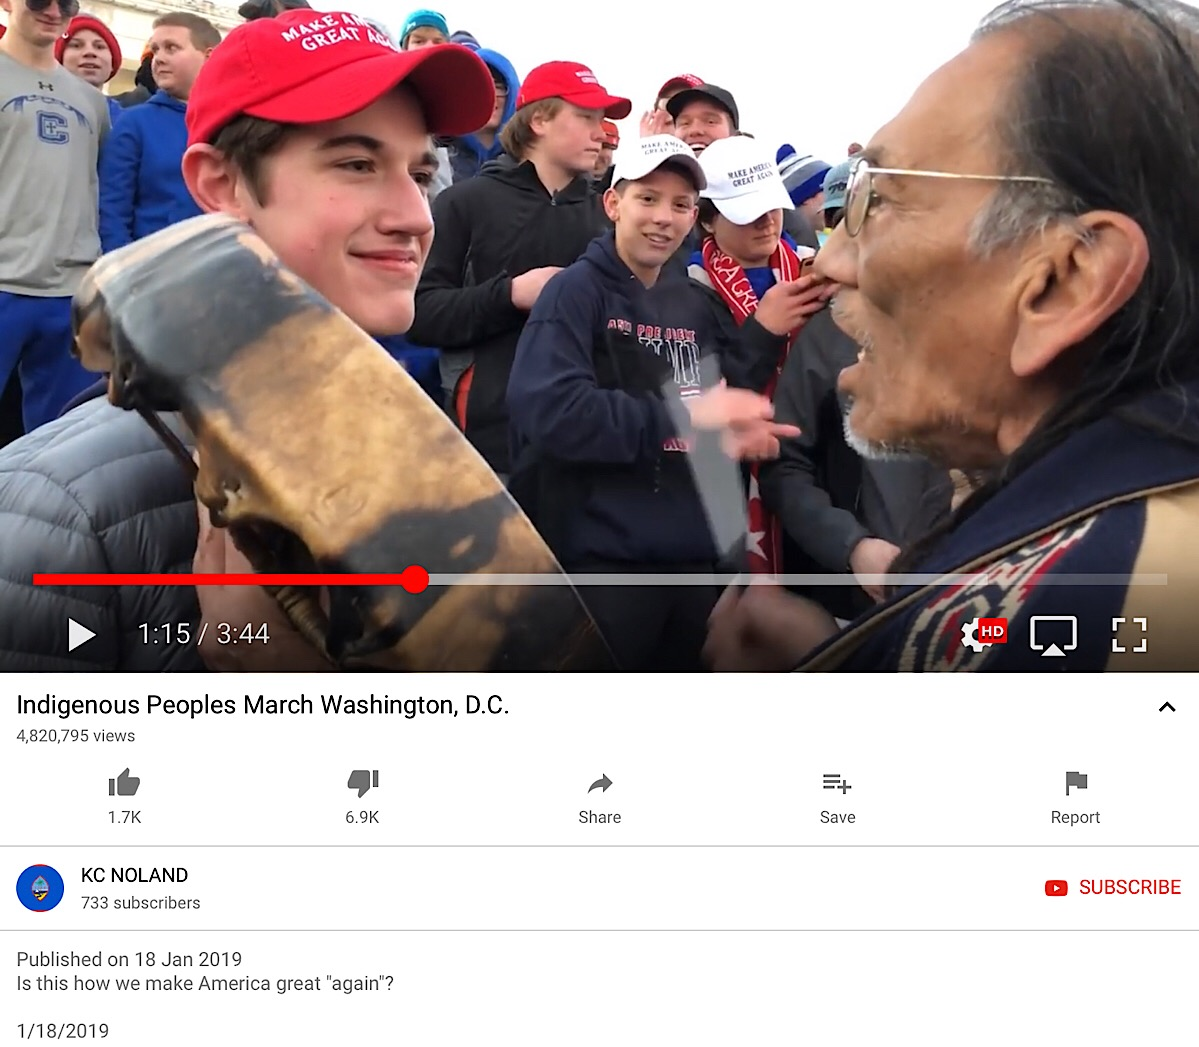 A screenshot of the original YouTube video showing the encounter between Covington Catholic High School students and a native American man.